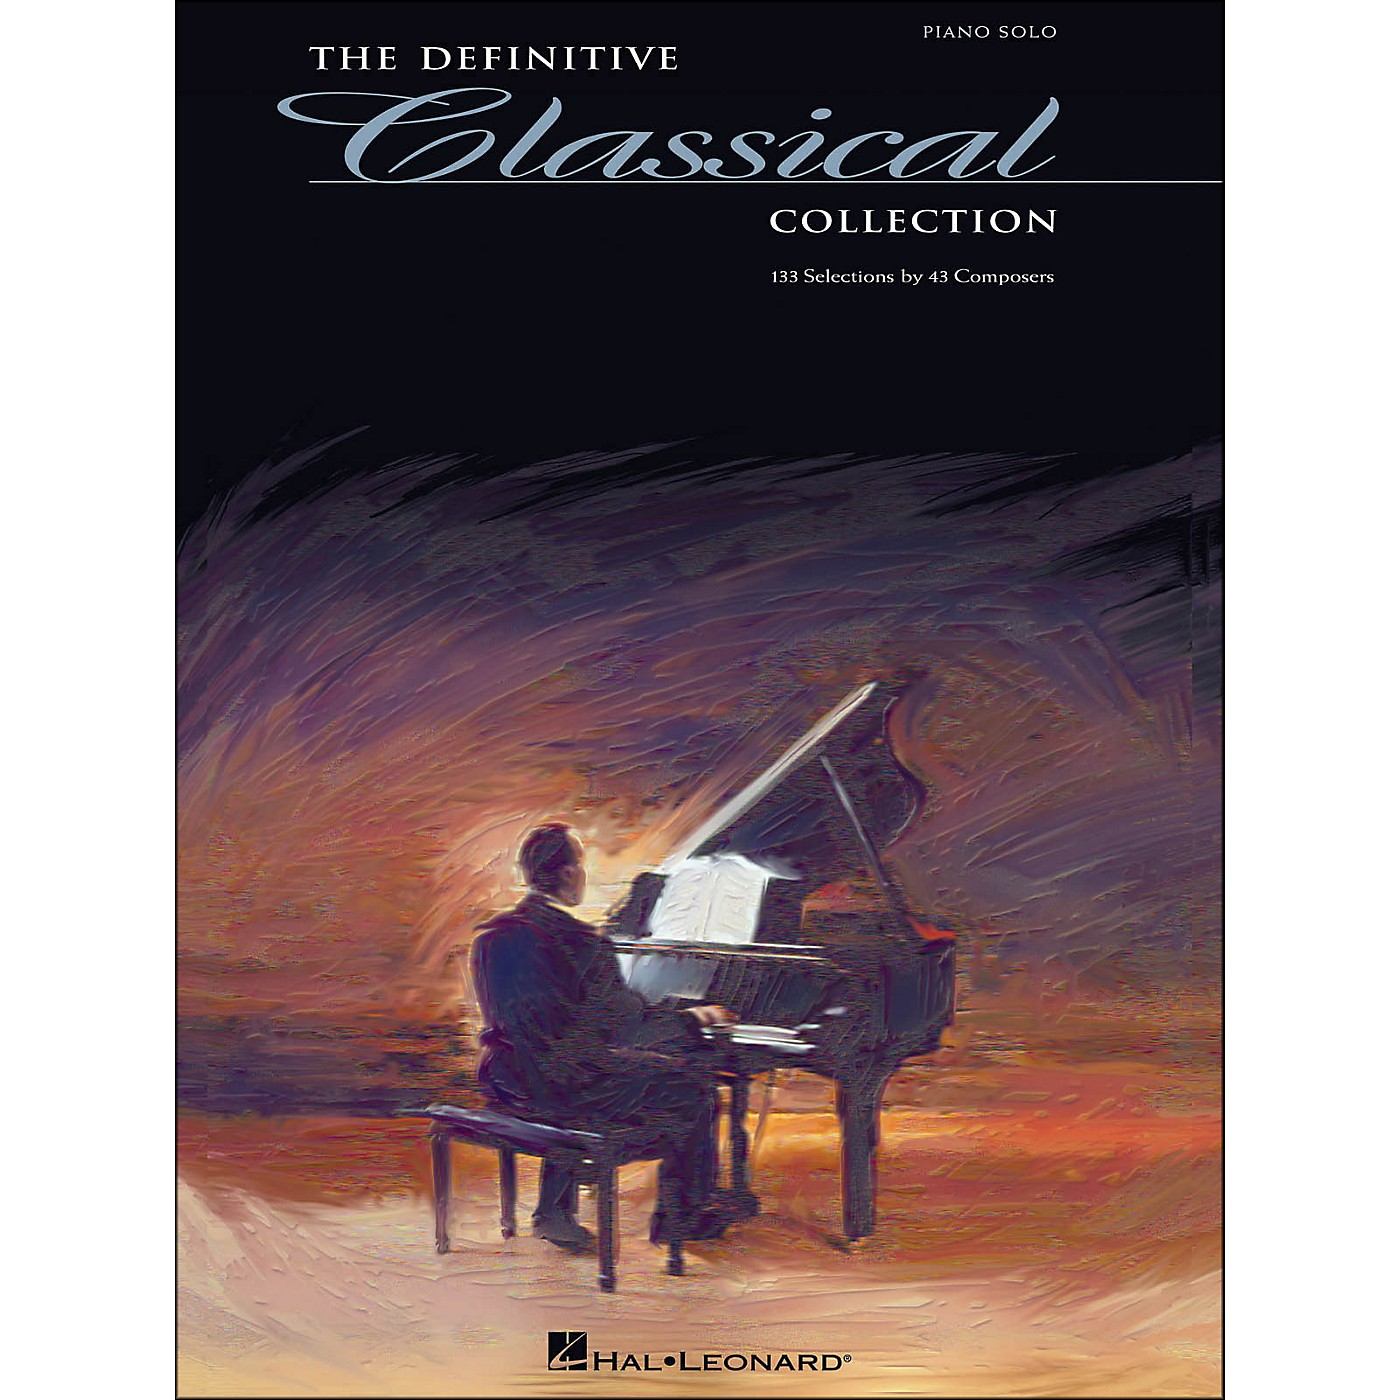 Hal Leonard Definitive Classical Collection for Piano Solo thumbnail